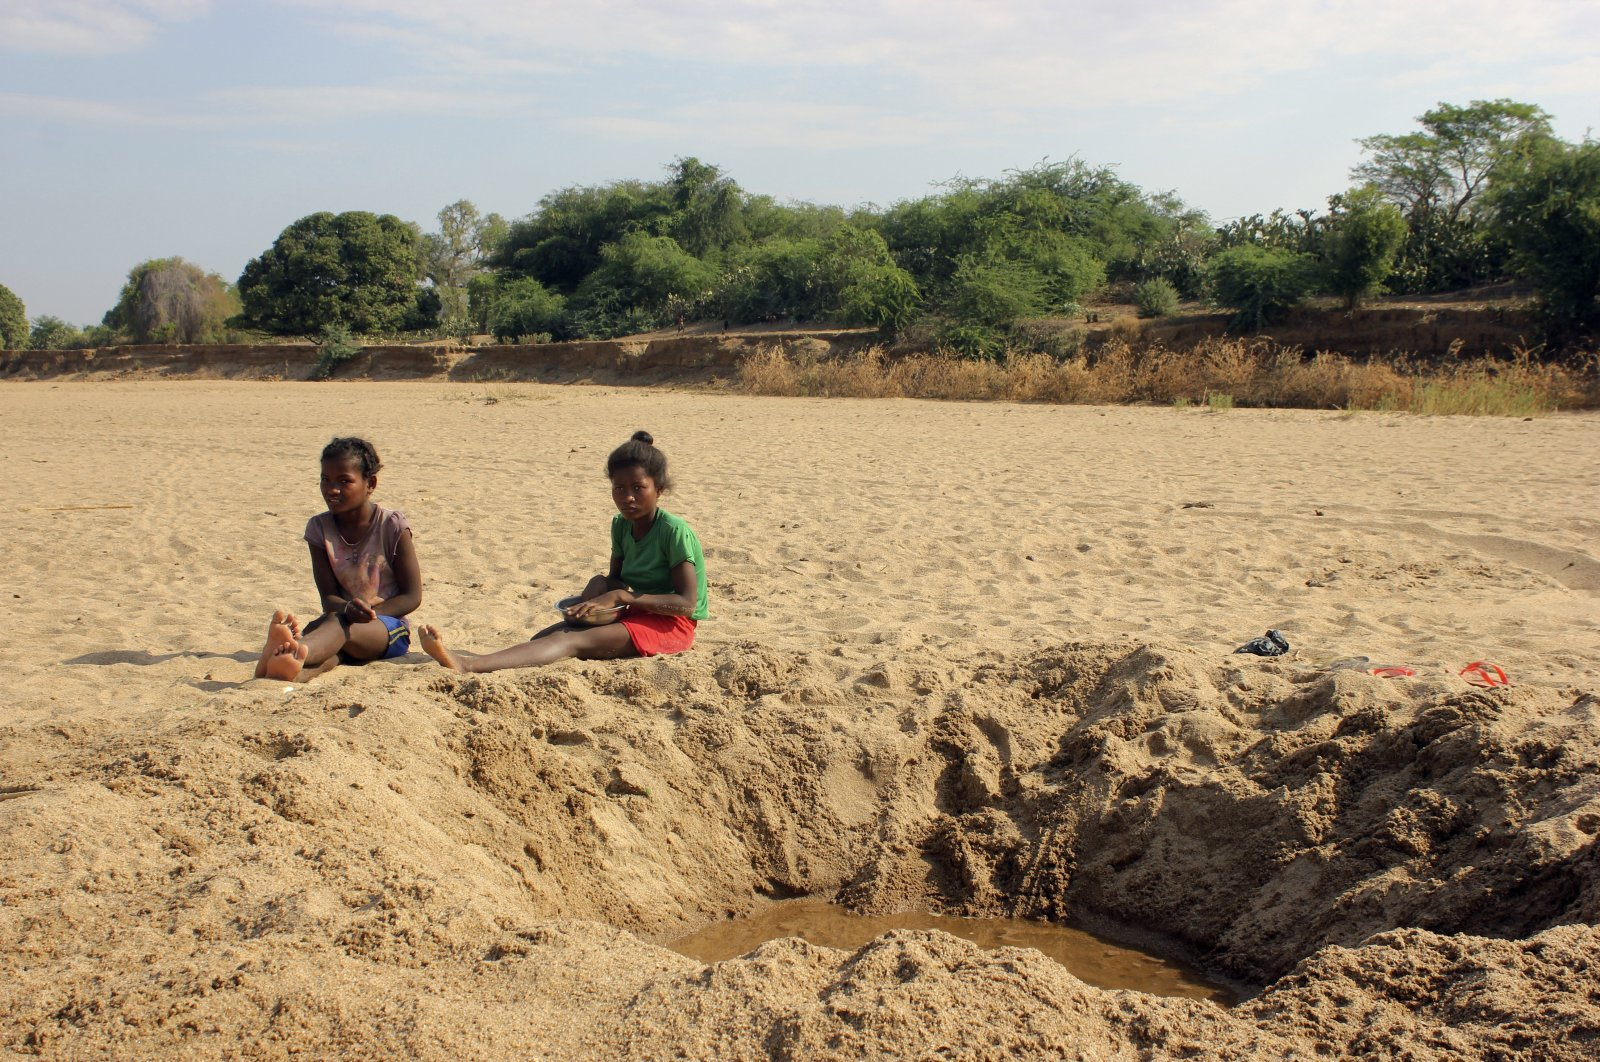 Children sit by a dug out water hole in a dry river bed in the remote village of Fenoaivo, Madagascar, Nov. 11, 2020. (AP Photo)